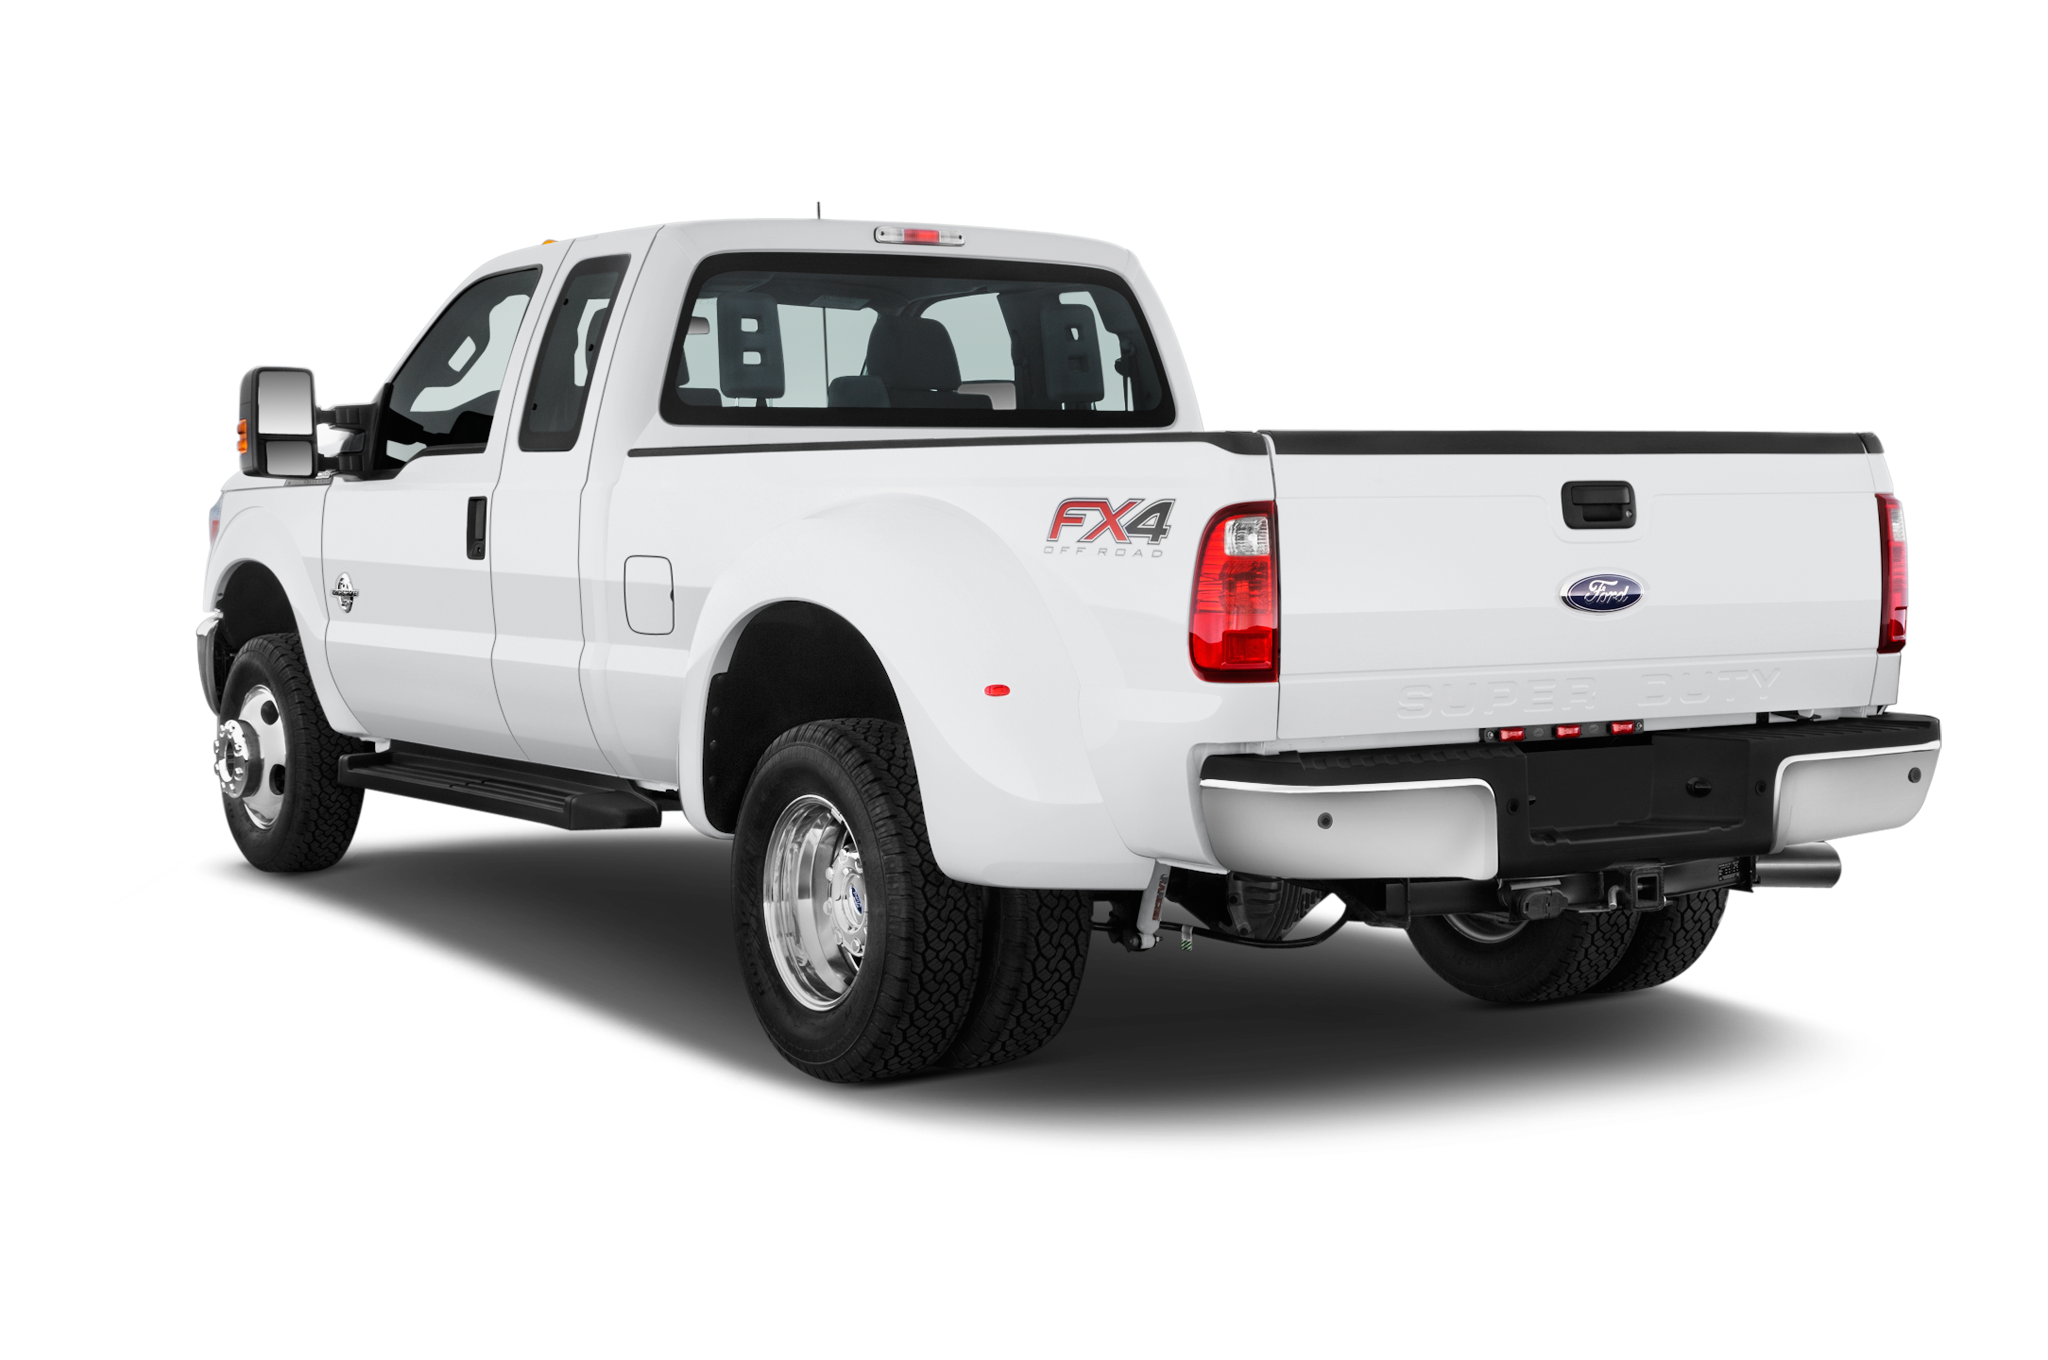 Ford F 350 Super Duty 2014 International Price Overview Prices Specs